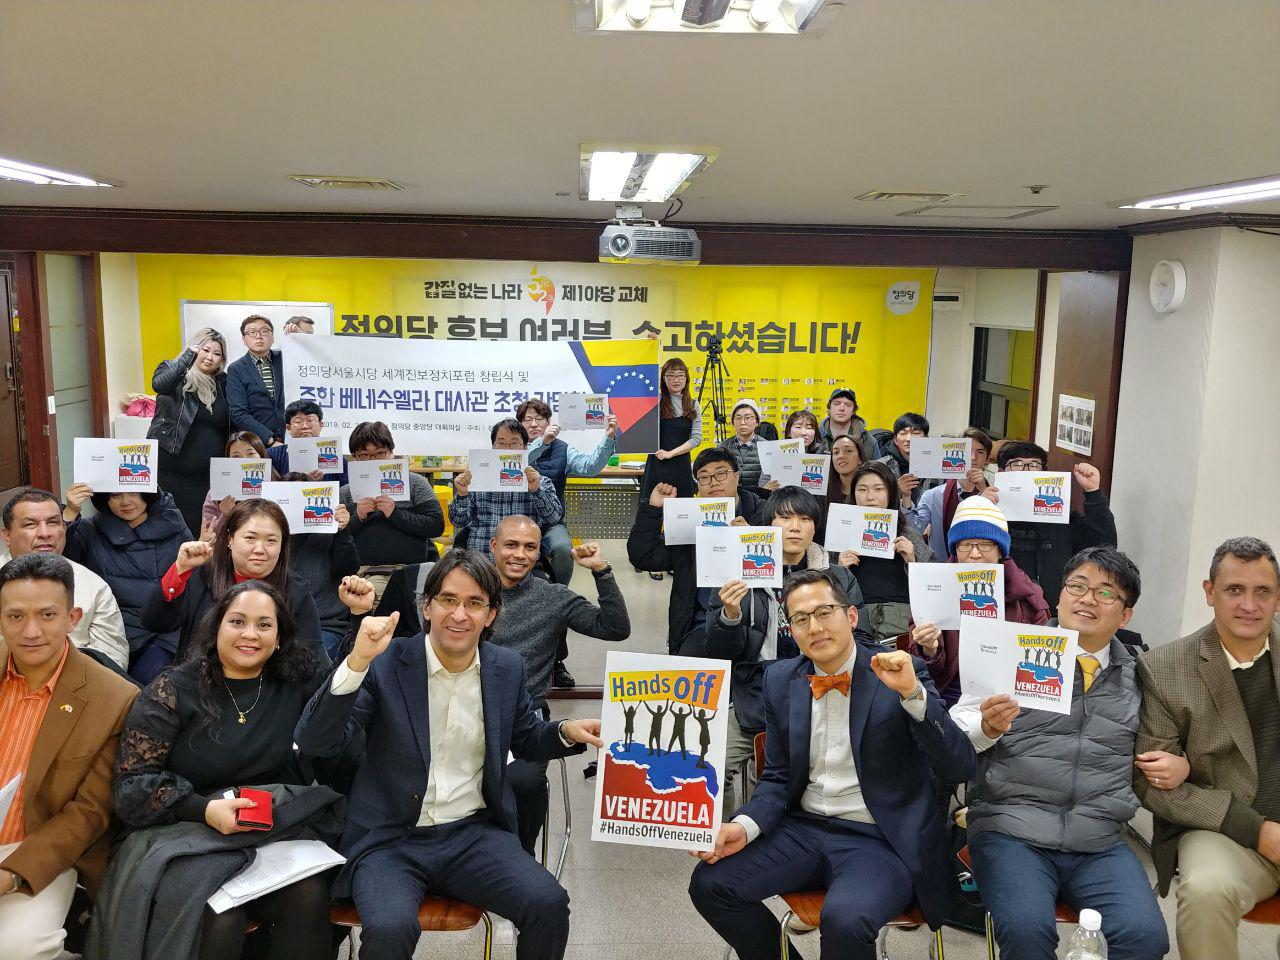 Photo from the event in solidarity with Venezuela.  In the front row, third from the left is Arturo Gil Pinto, the Charge D'Affaires second from the right is  Park Jae-seong, the head of the International Progressive Politics Forum.